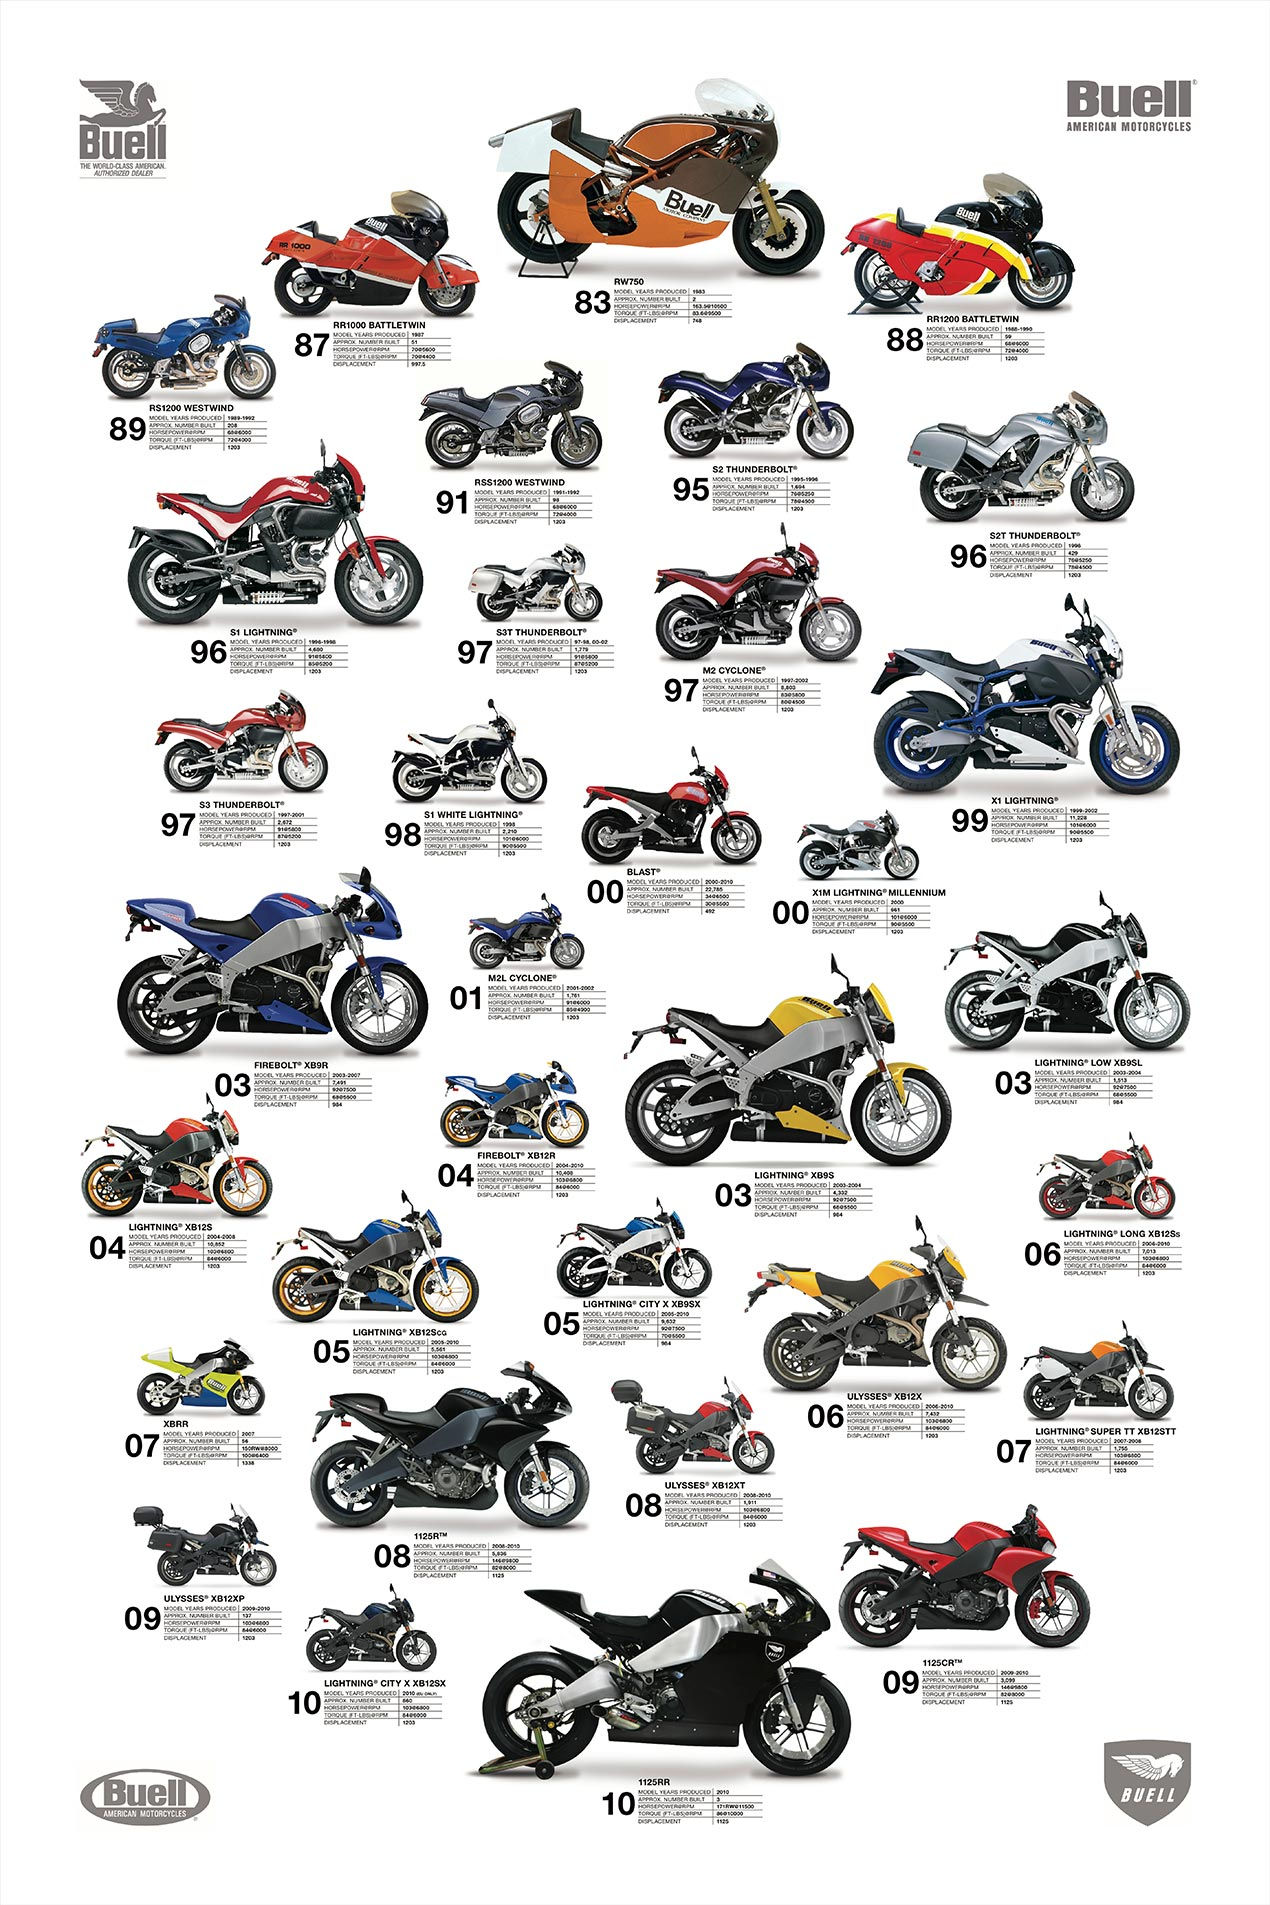 27 Years of Buell Motorcycles - Asphalt & Rubber